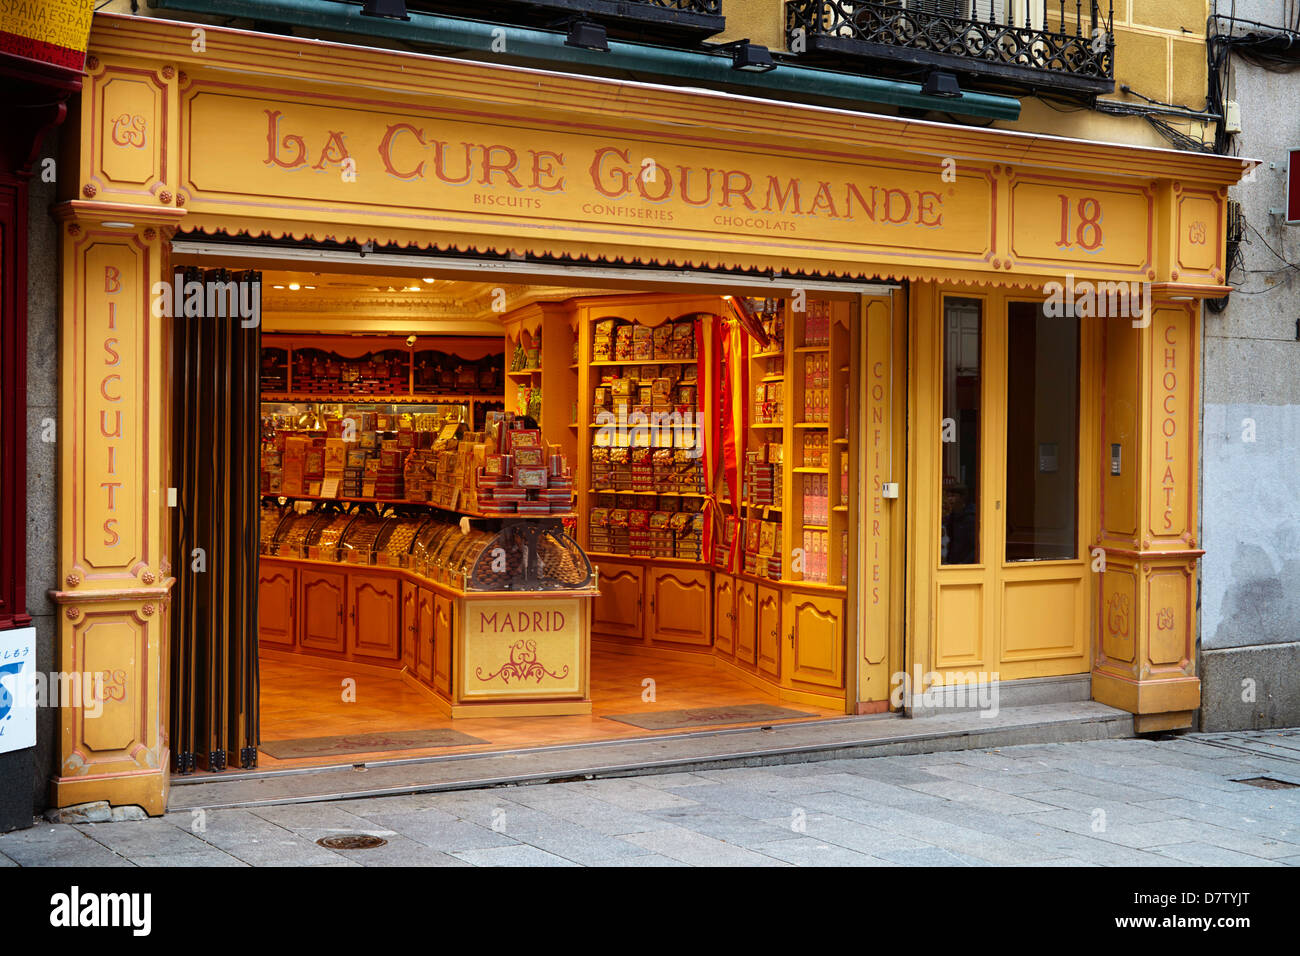 La Cure Gourmande biscuit shop, Madrid, Spain - Stock Image